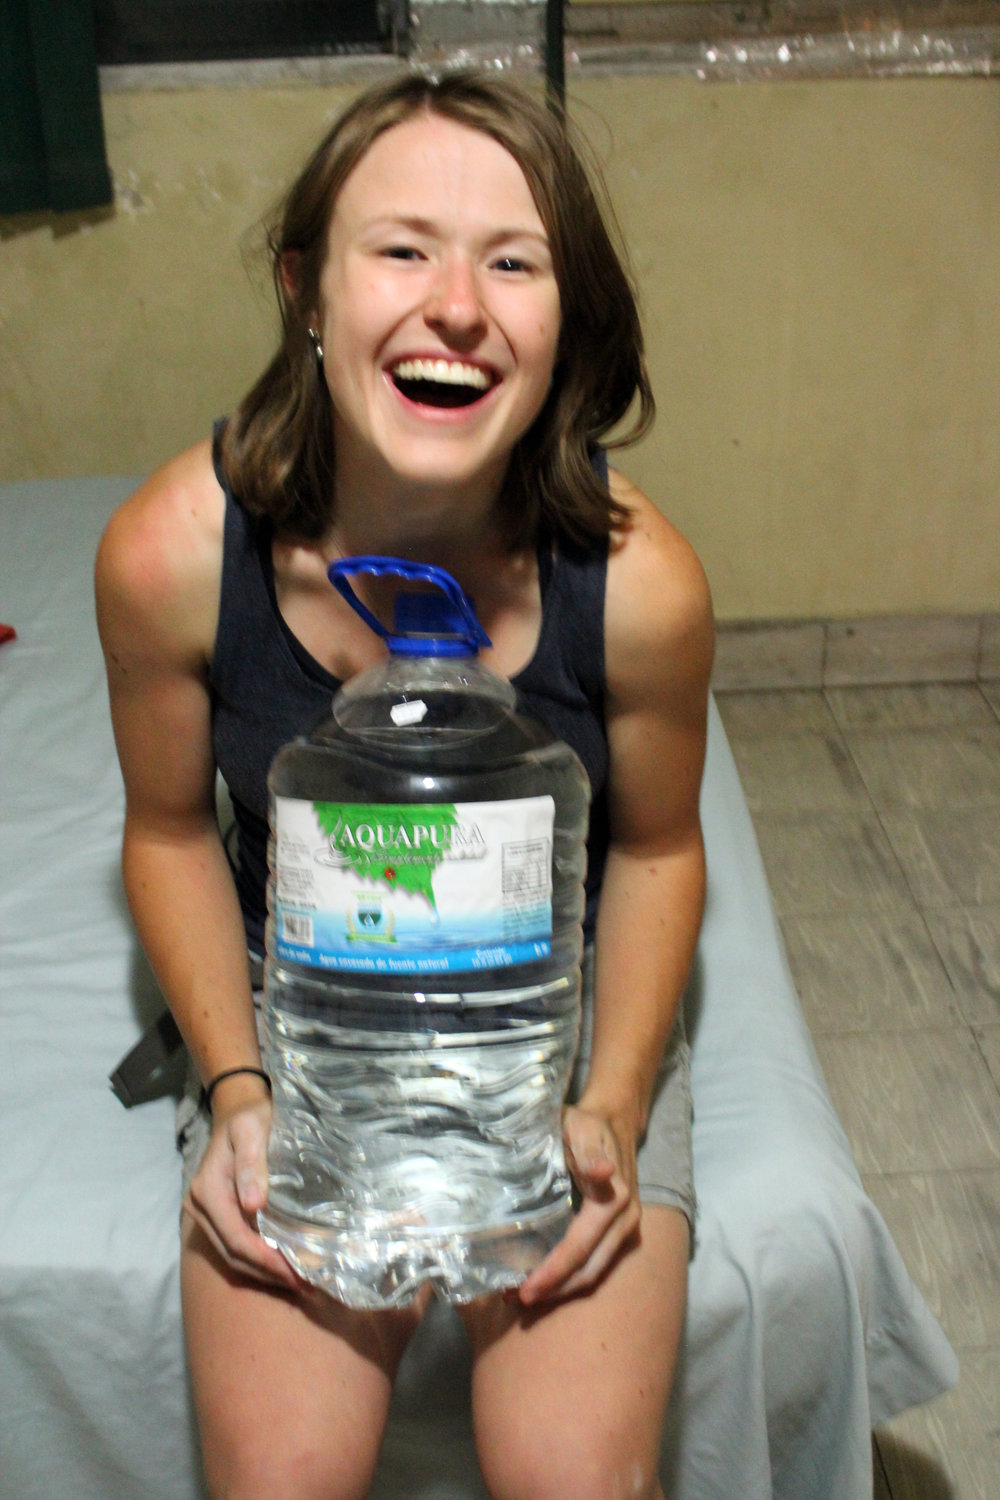 In the dizzying heat of El Salvador, I got a little deliriously excited about this giant water bottle, the size of my torso for just over $1.  No more filtering water for a few days!